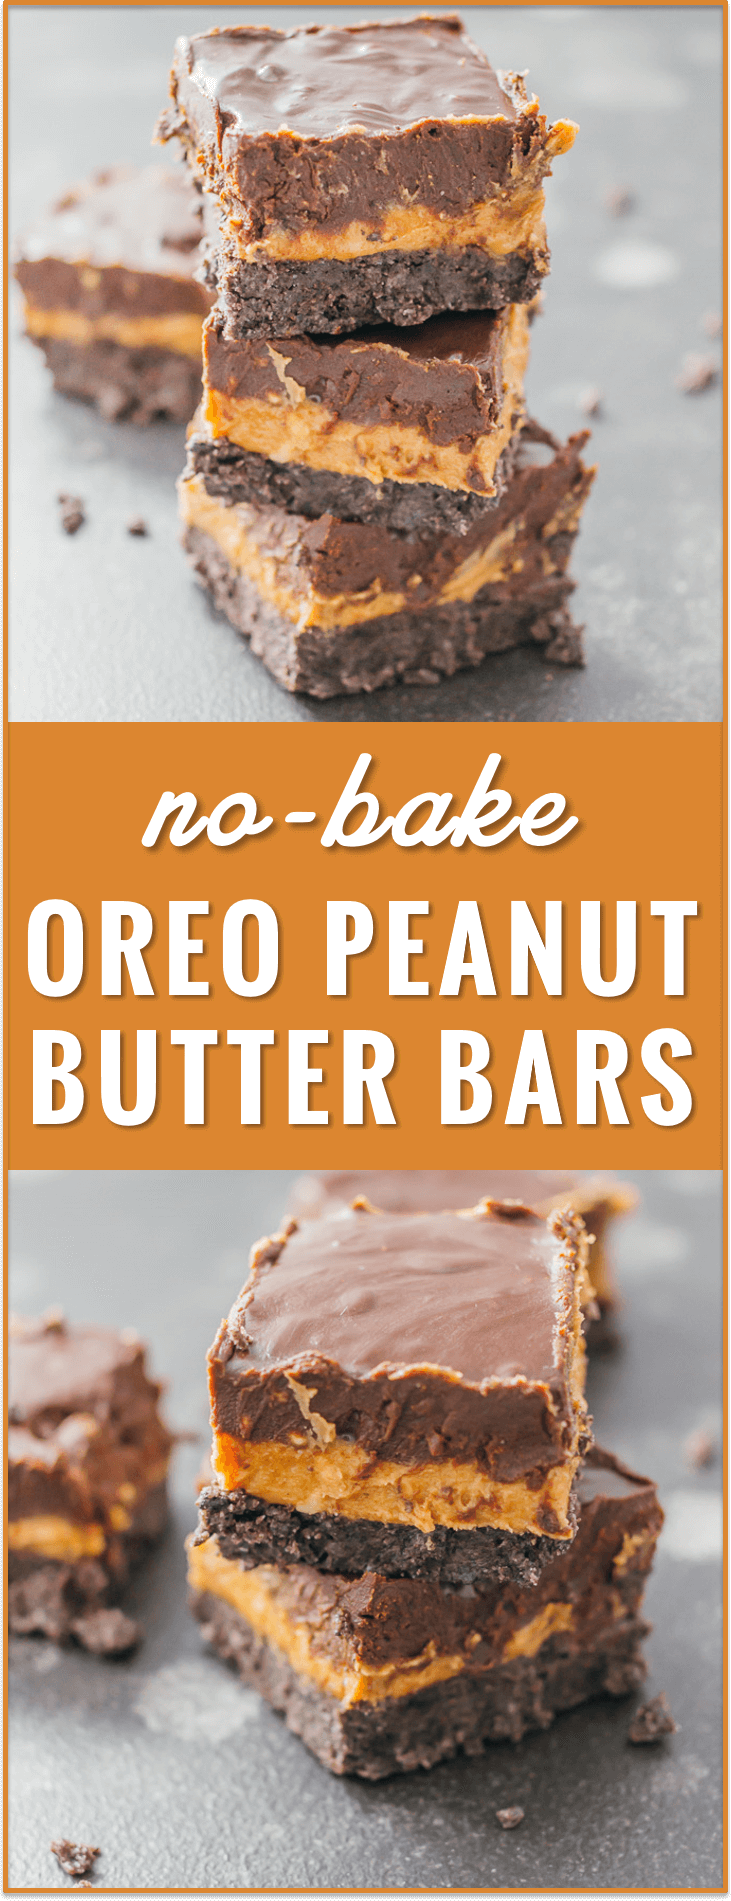 These no-bake Oreo peanut butter bars with chocolate chips are an easy summertime dessert with three delicious layers. recipe, cream cheese, healthy, 6 ingredients, squares, oatmeal, without graham crackers,